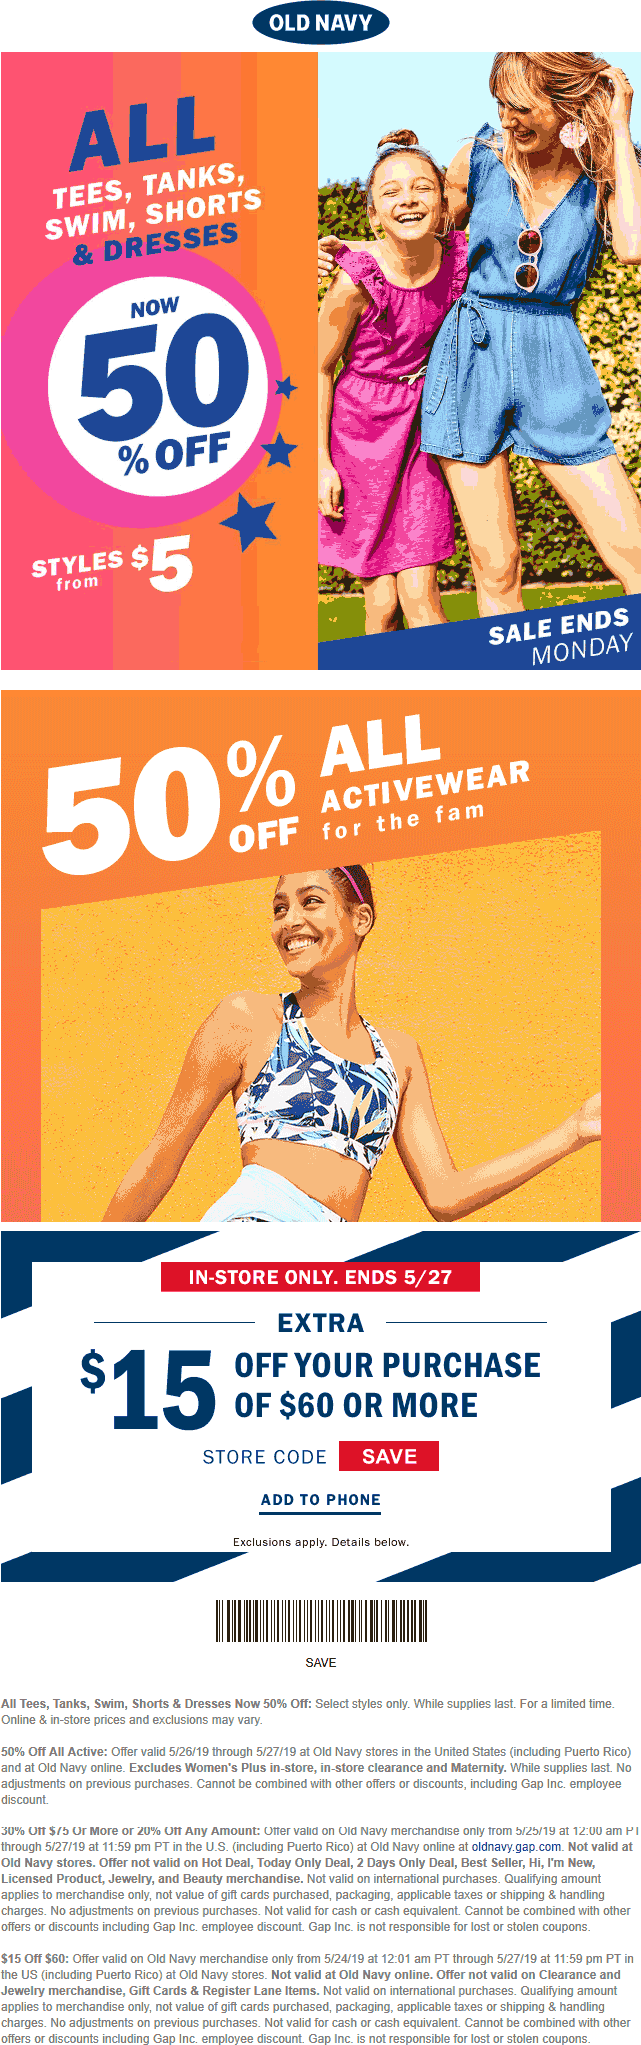 Old Navy Coupon January 2020 $15 off $60 & more today at Old Navy, or 30% off $75 online via promo code MORE